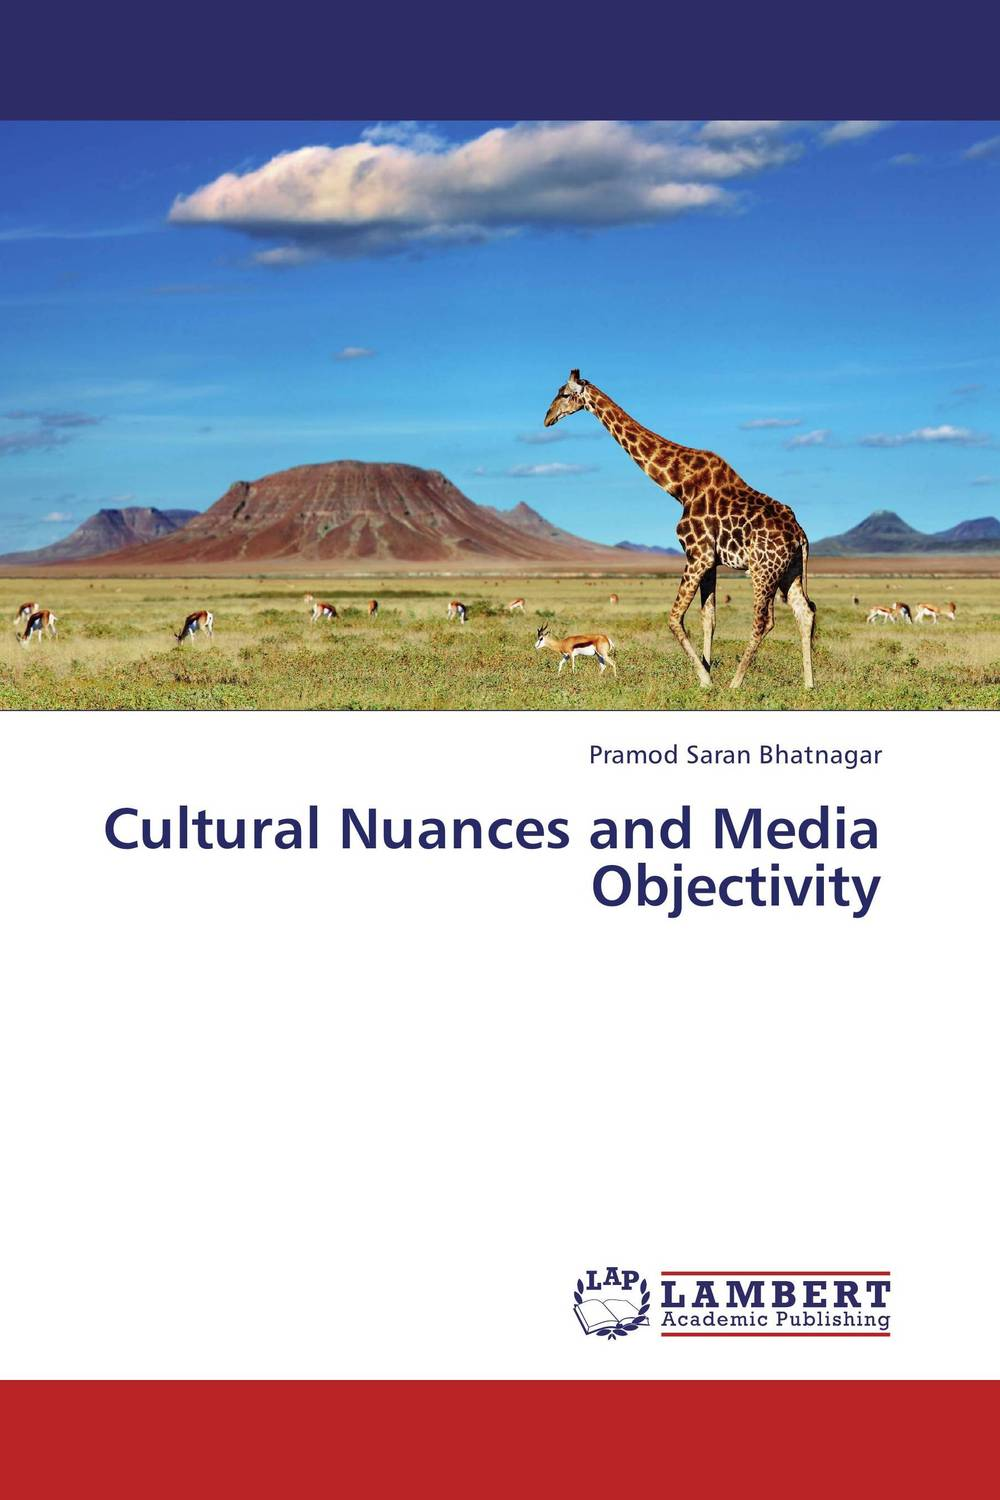 Cultural Nuances and Media Objectivity folk media and cultural values among the igala